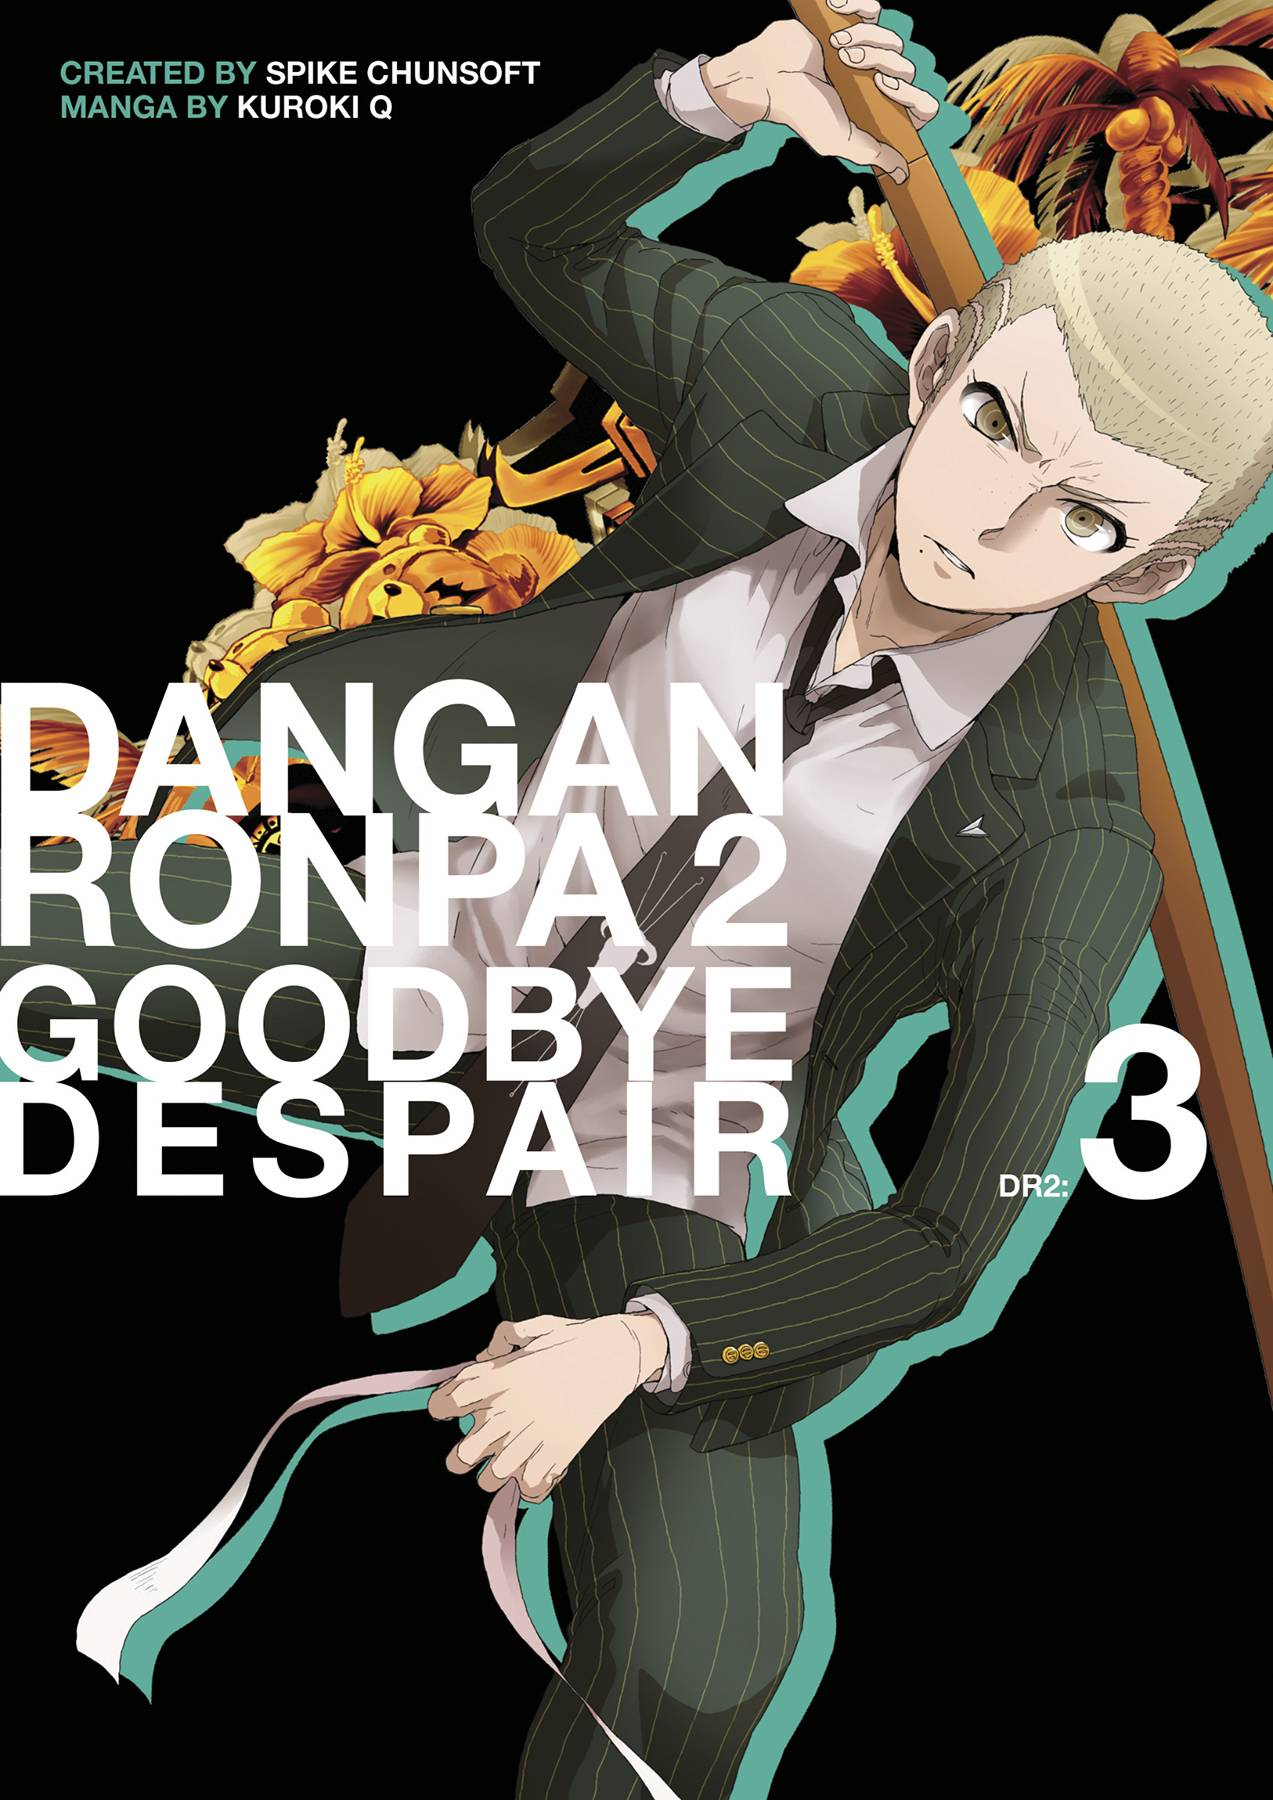 DANGANRONPA 2 GOODBYE DESPAIR TP 03